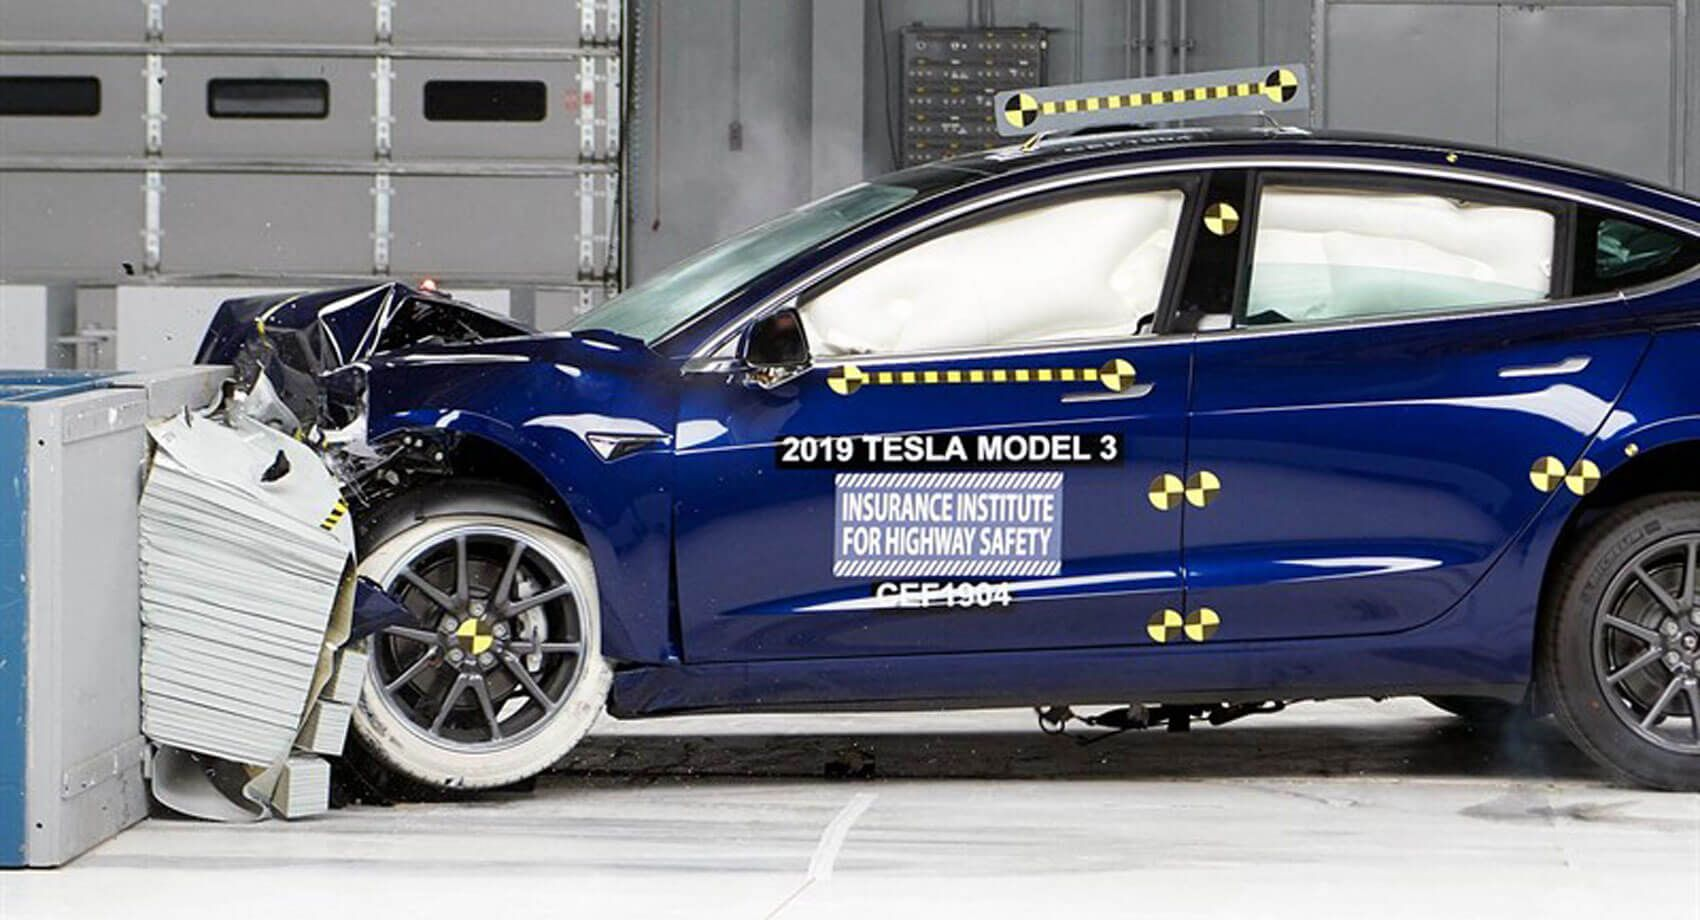 Tesla Model 3 Aces Iihs Safety Tests Nabs Top Safety Pick Award